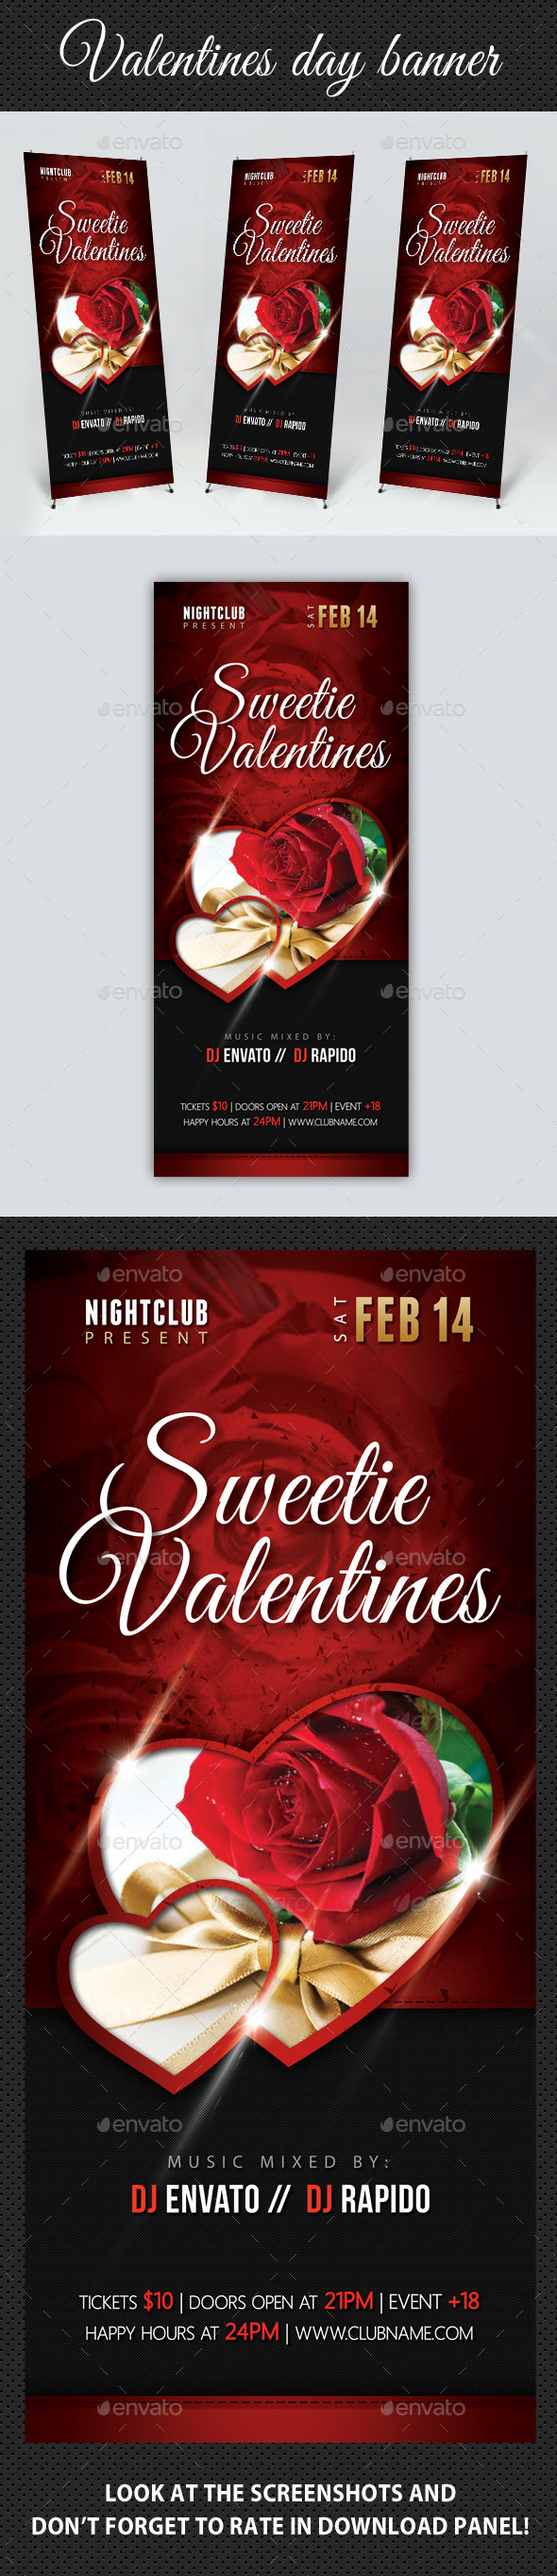 GraphicRiver Valentines Day Banner Template 10040611